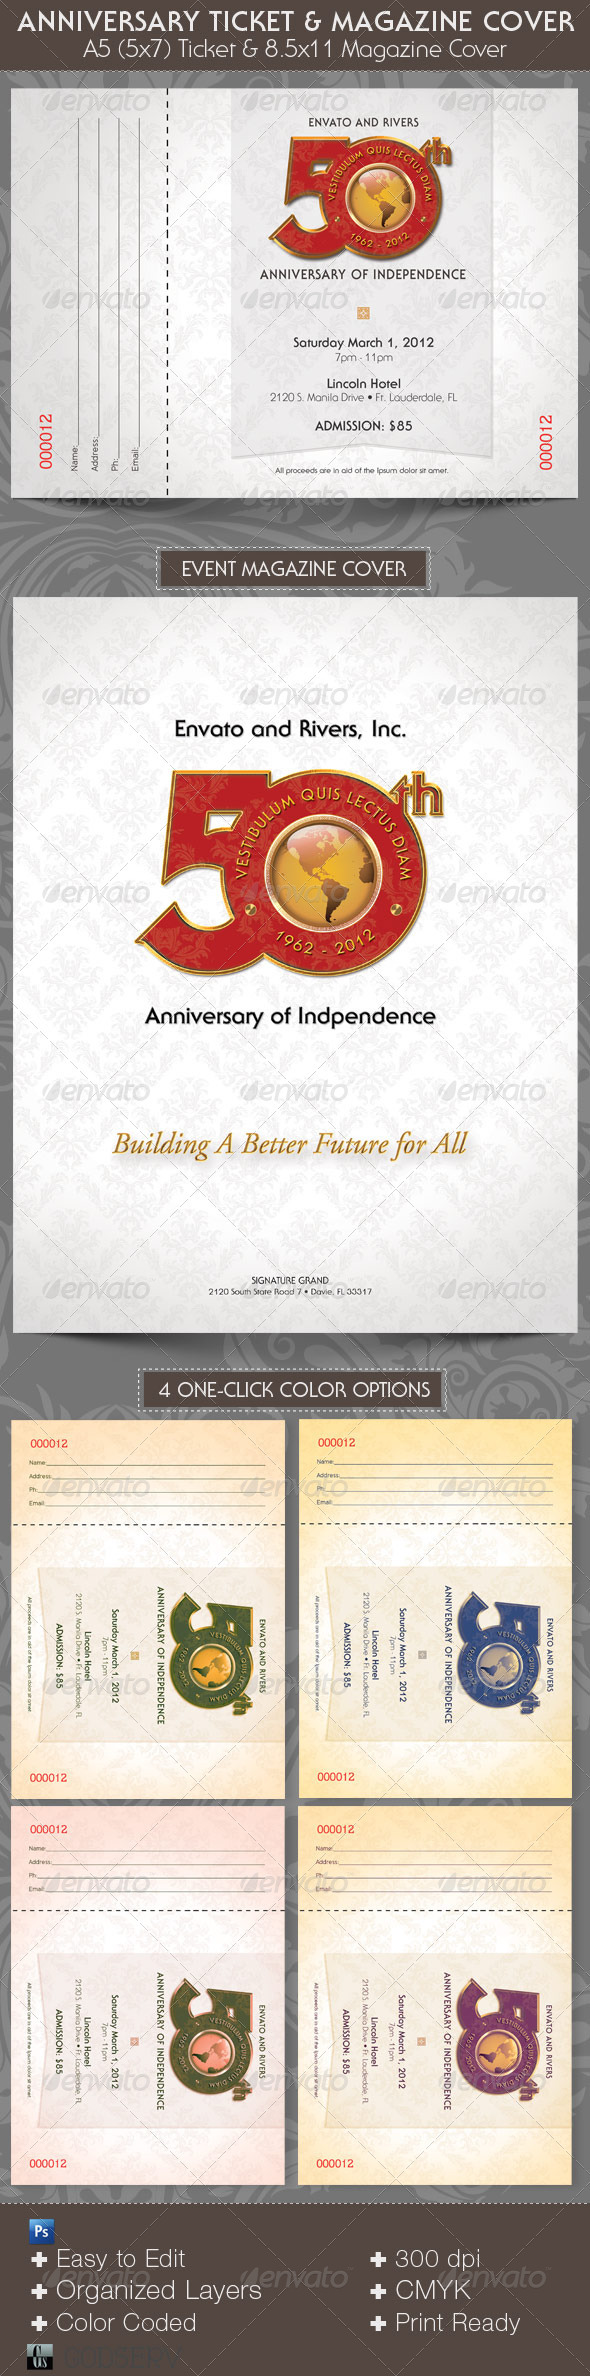 Anniversary Event Ticket and Magazine Cover - Miscellaneous Print Templates